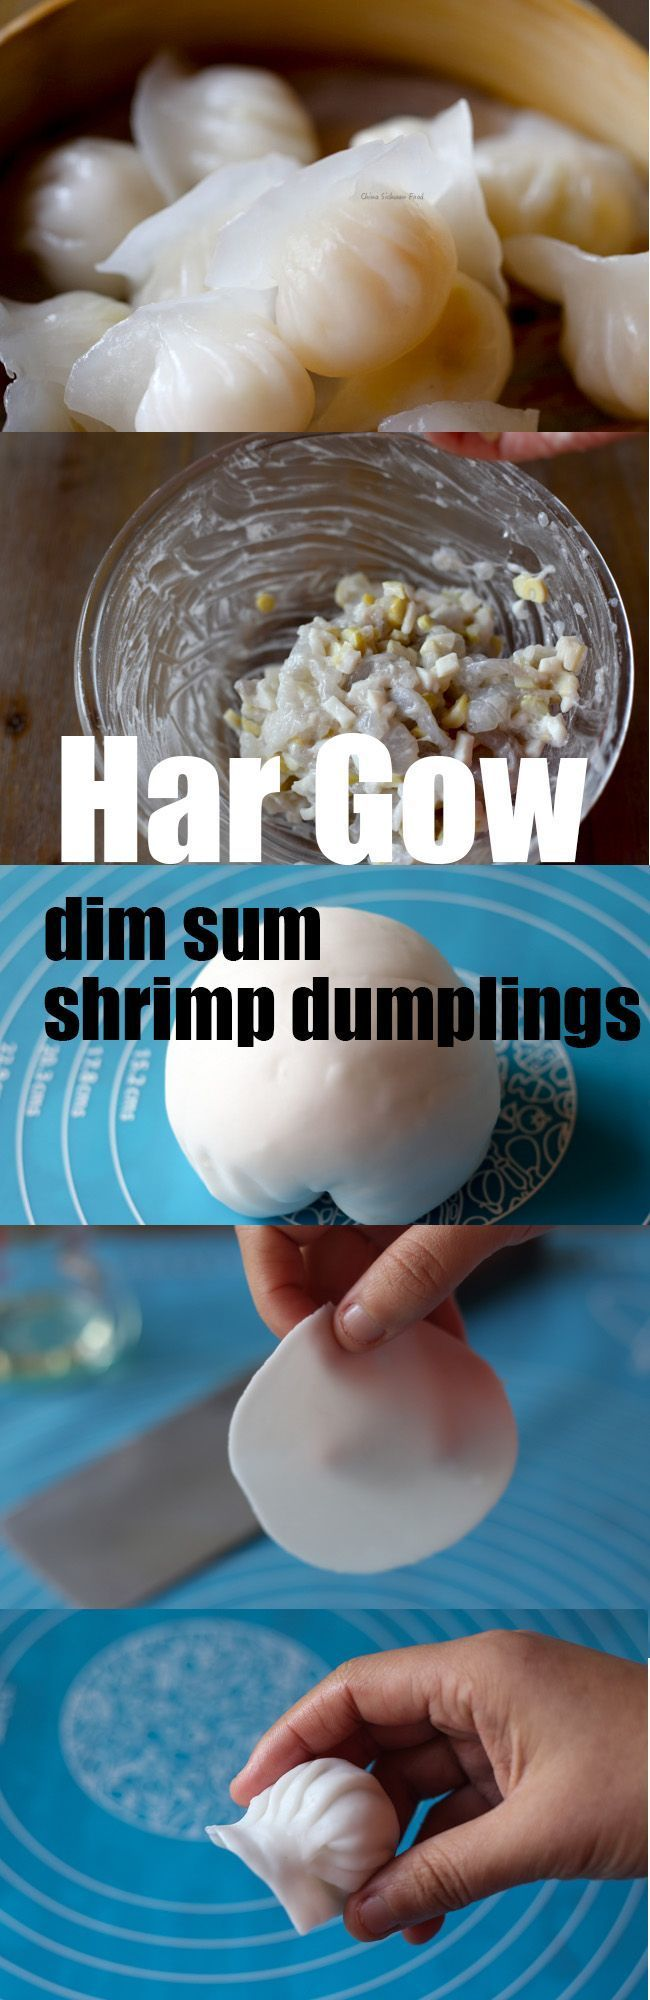 508 best Dim sum & Yam Cha images on Pinterest | Asian food recipes ...